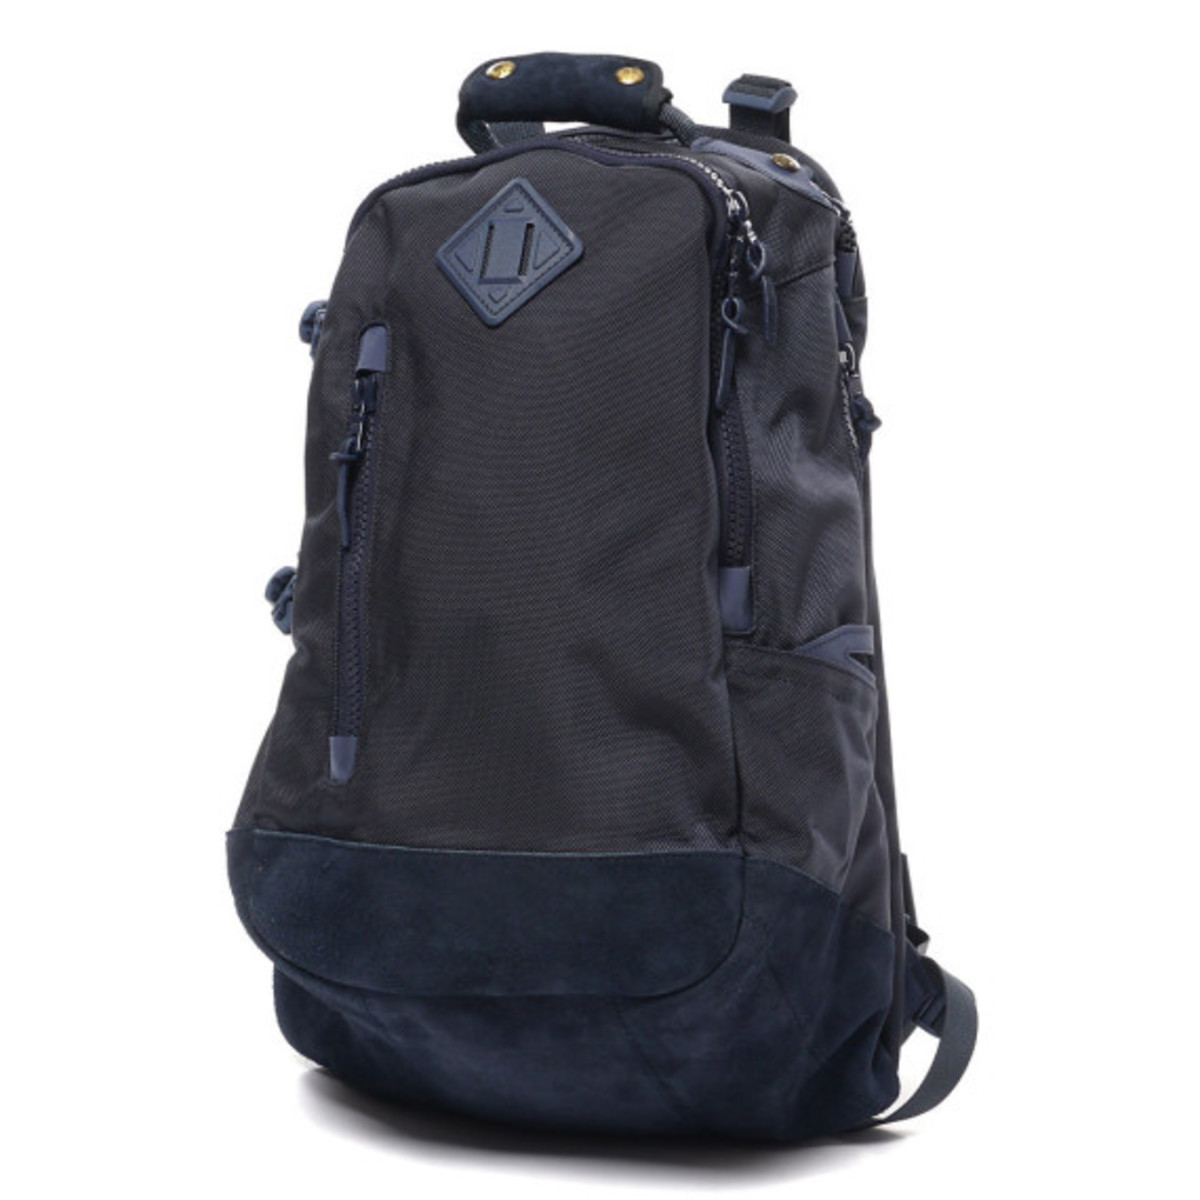 visvim-ballistic-20l-backpack-navy-02